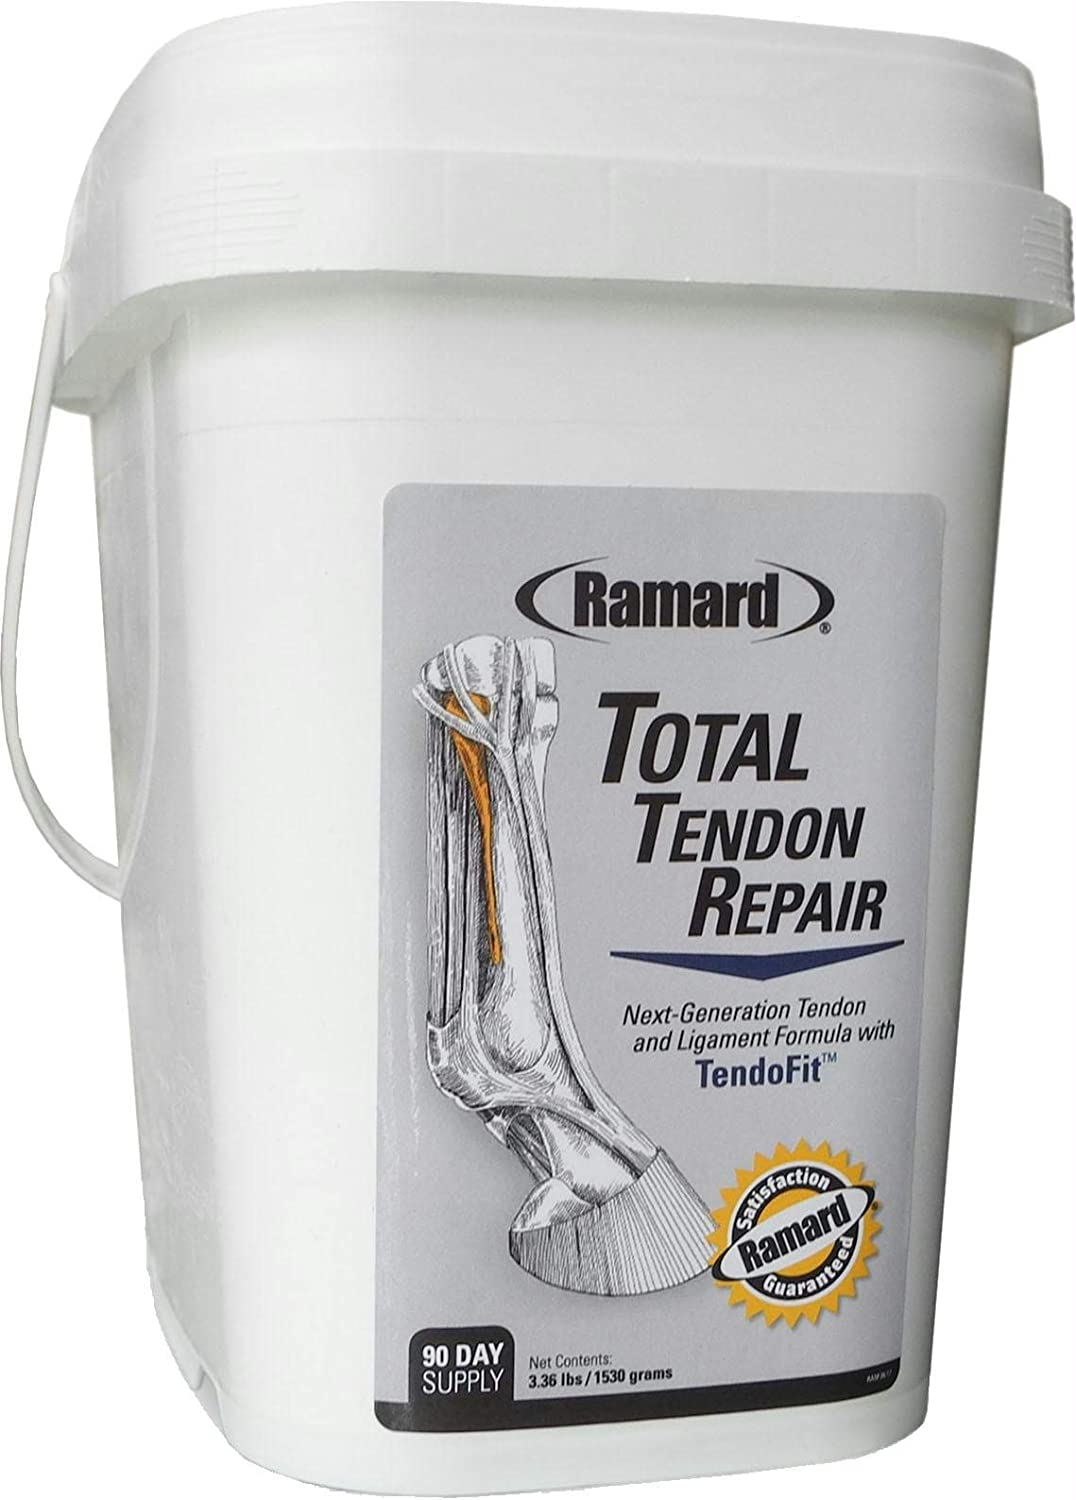 Ramard Total Tendon Repair Total Tendon Repair